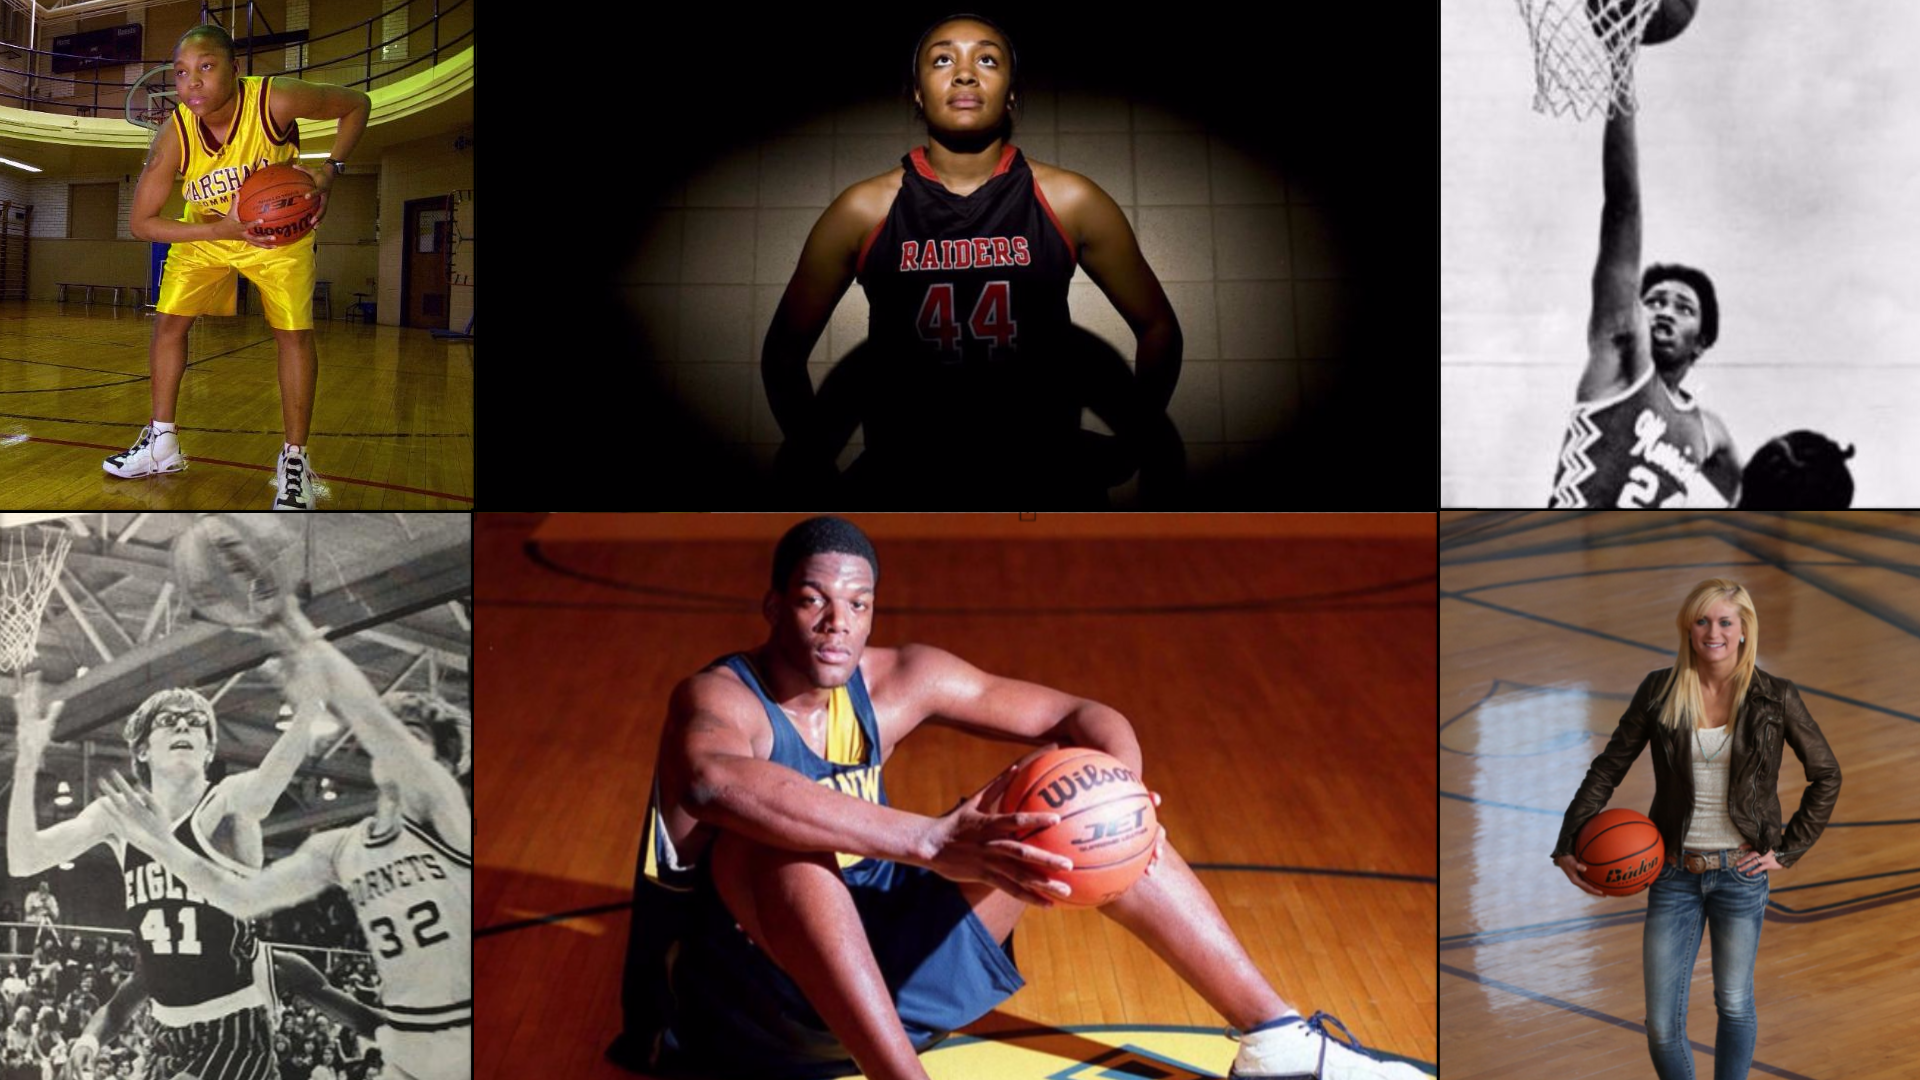 88b011efc417 100 best Illinois high school basketball players ever - Chicago Tribune